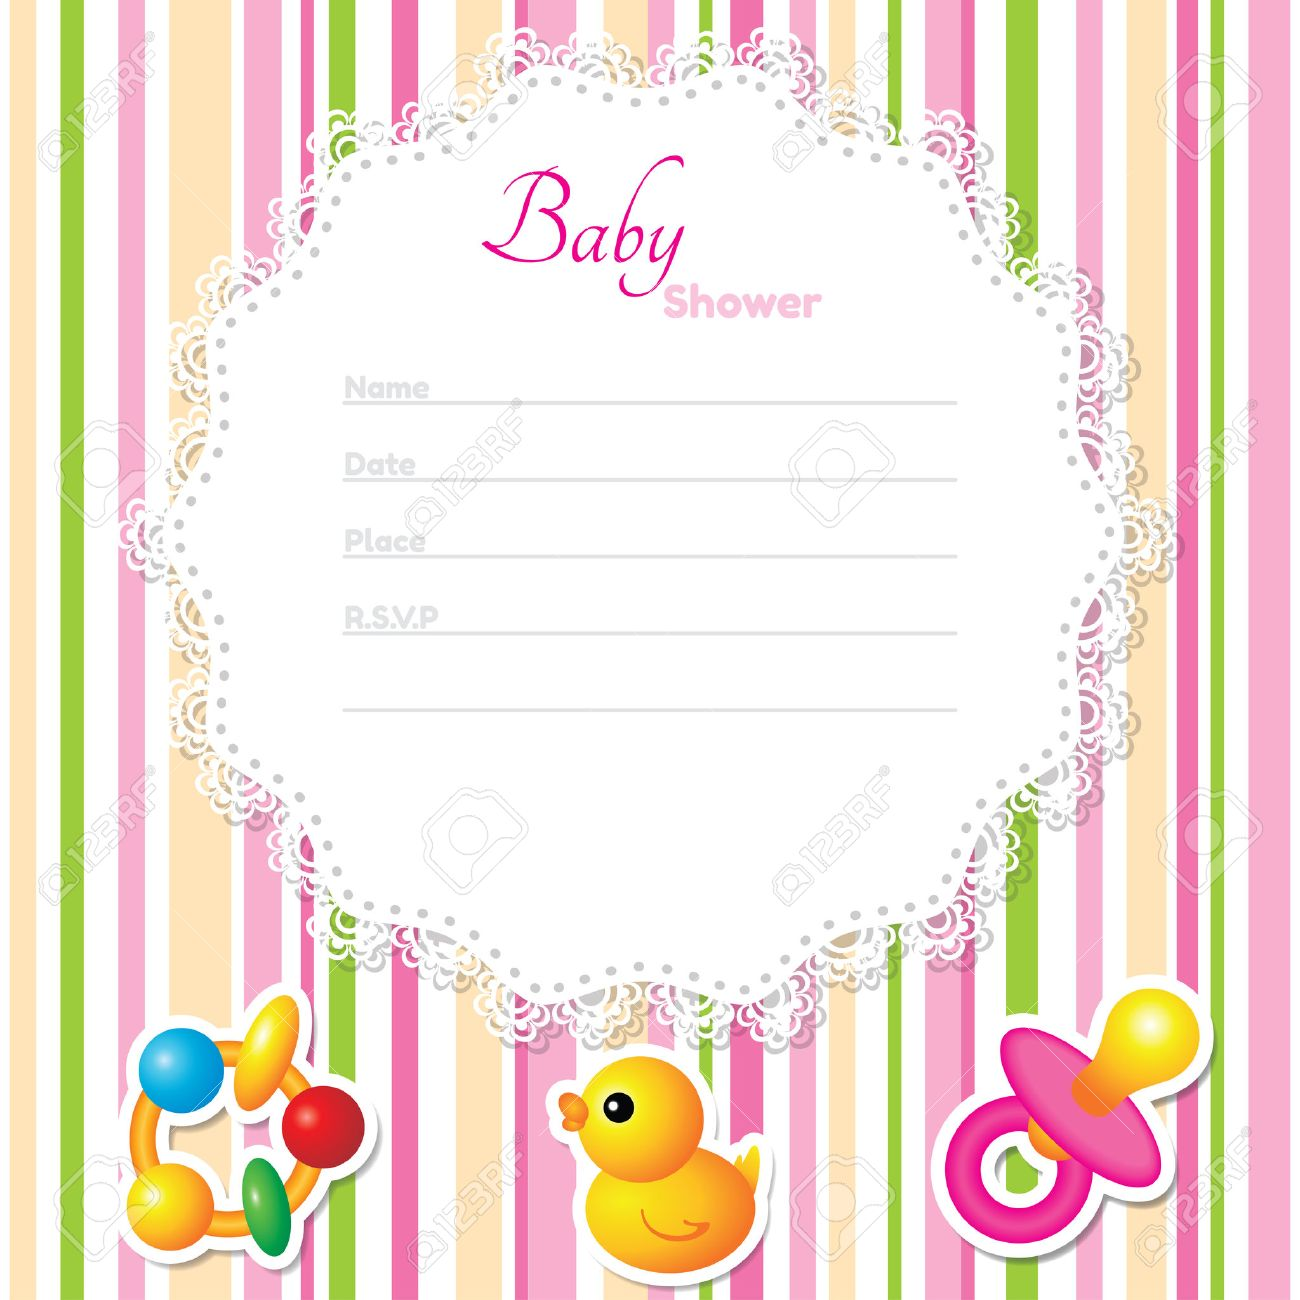 Baby Shower Card Template. CMYK Colors Stock Vector   22236886